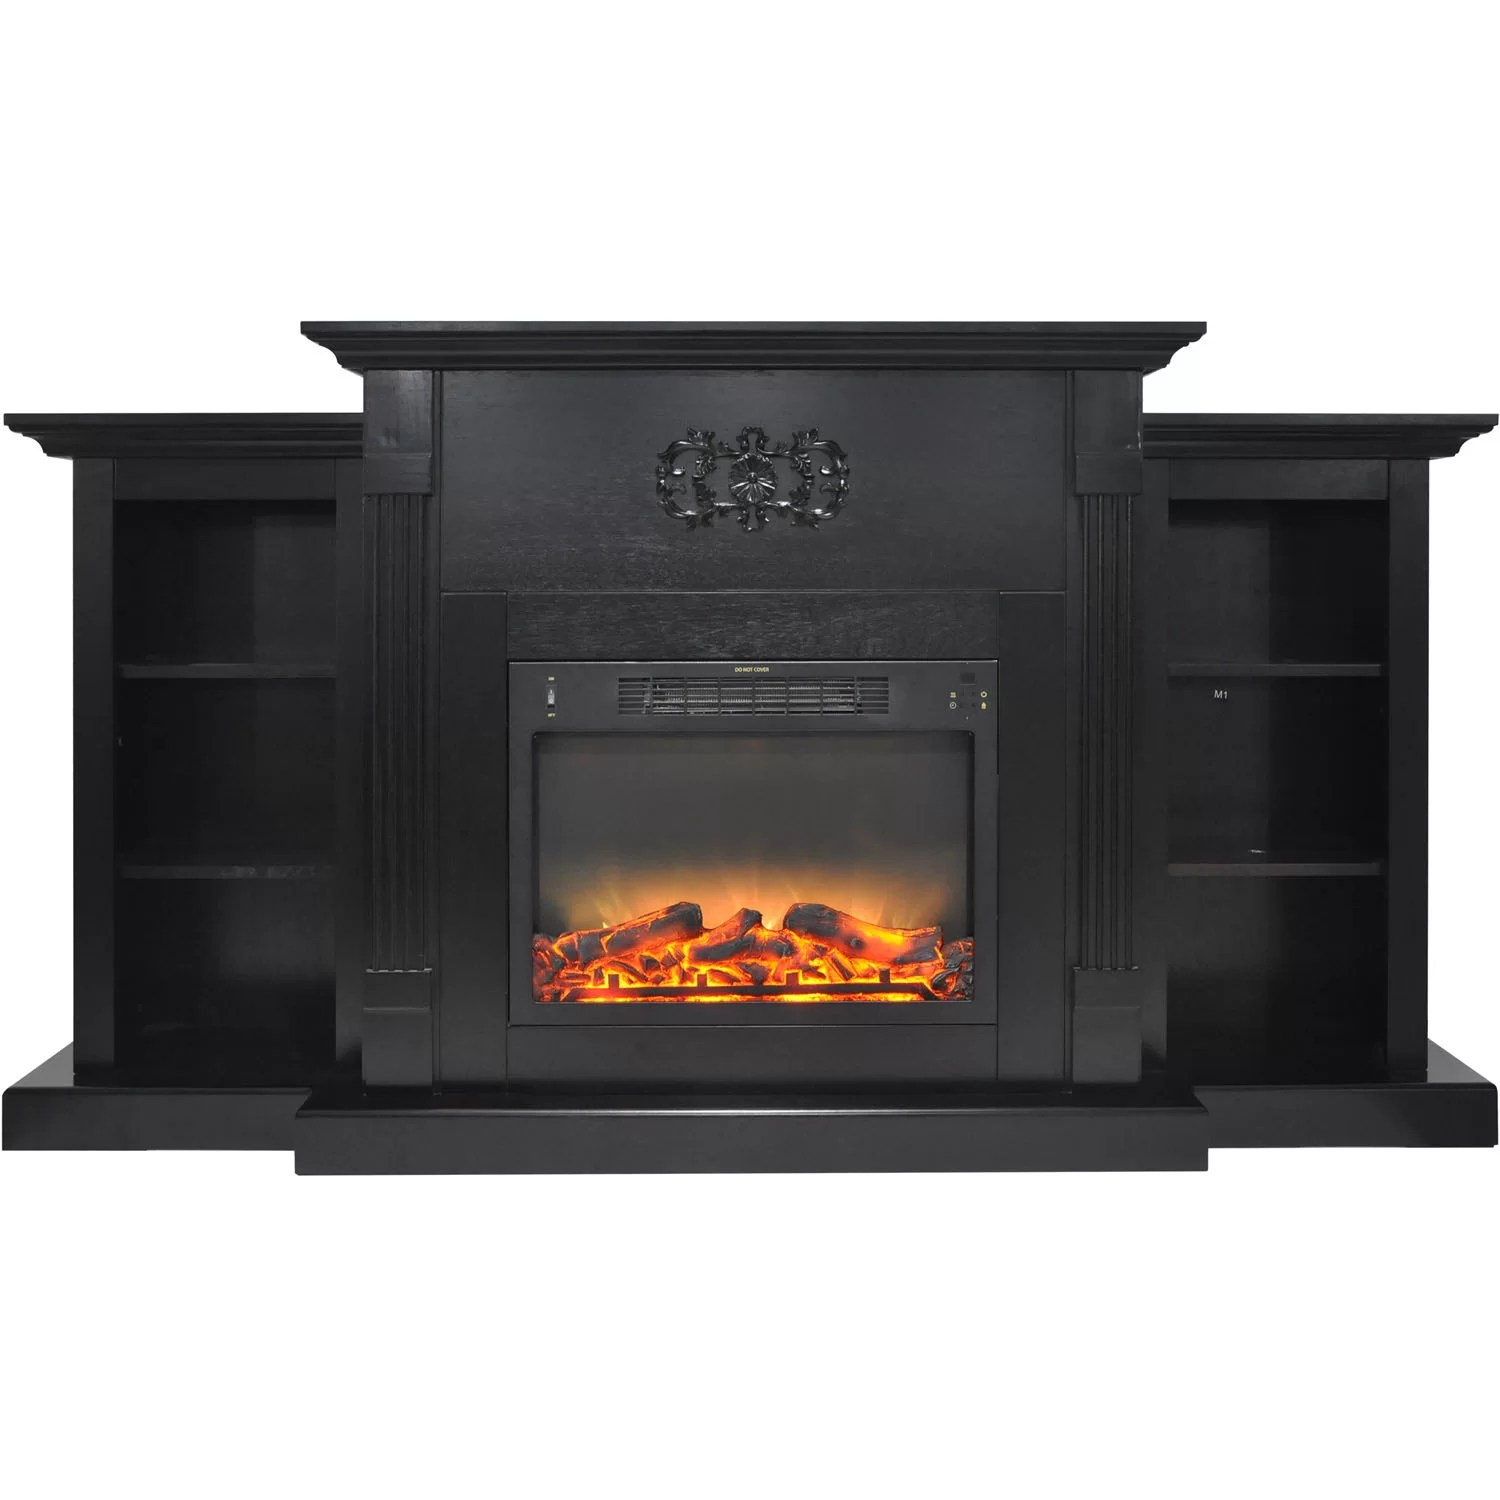 Electric Fireplace.com Dimmick Electric Fireplace